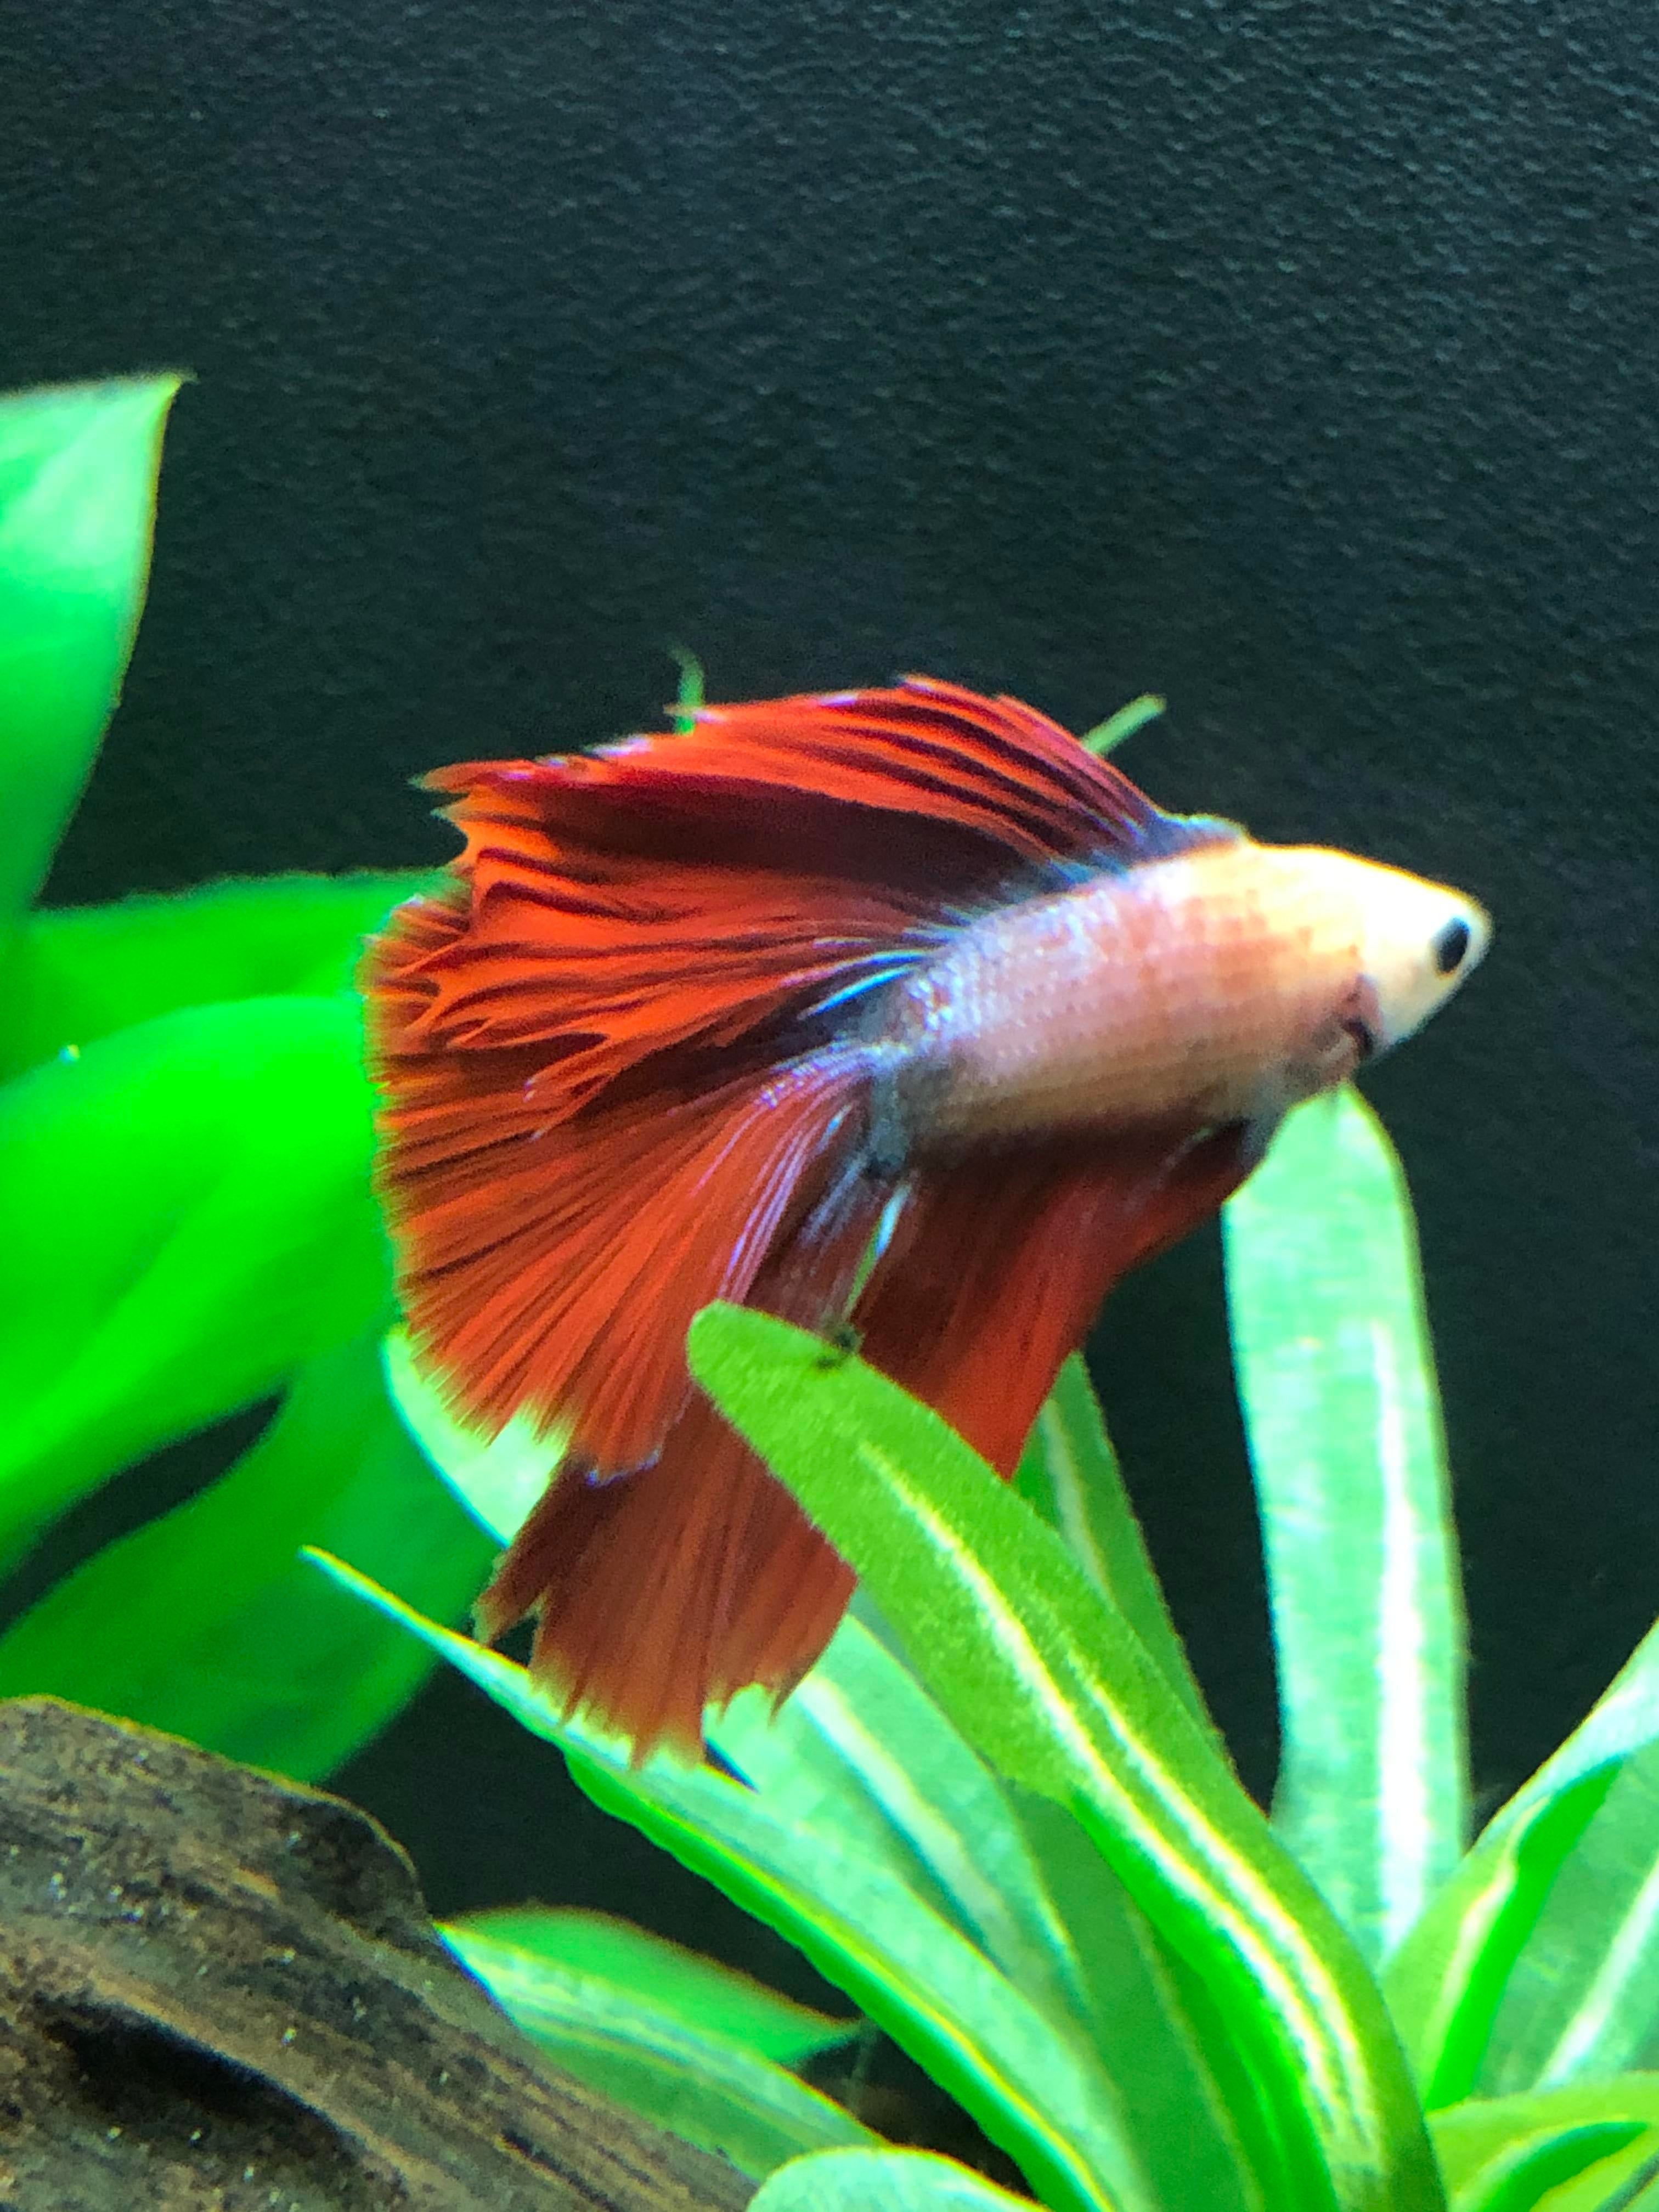 Betta Fish Is This Early Fin Rot Or Another Disease Or Am I Just Being Paranoid 7 5 Ph 300ppm Alk 25ppm Hard 0 5 Ppm Nitrites 0pp In 2020 Betta Fish Betta Fish